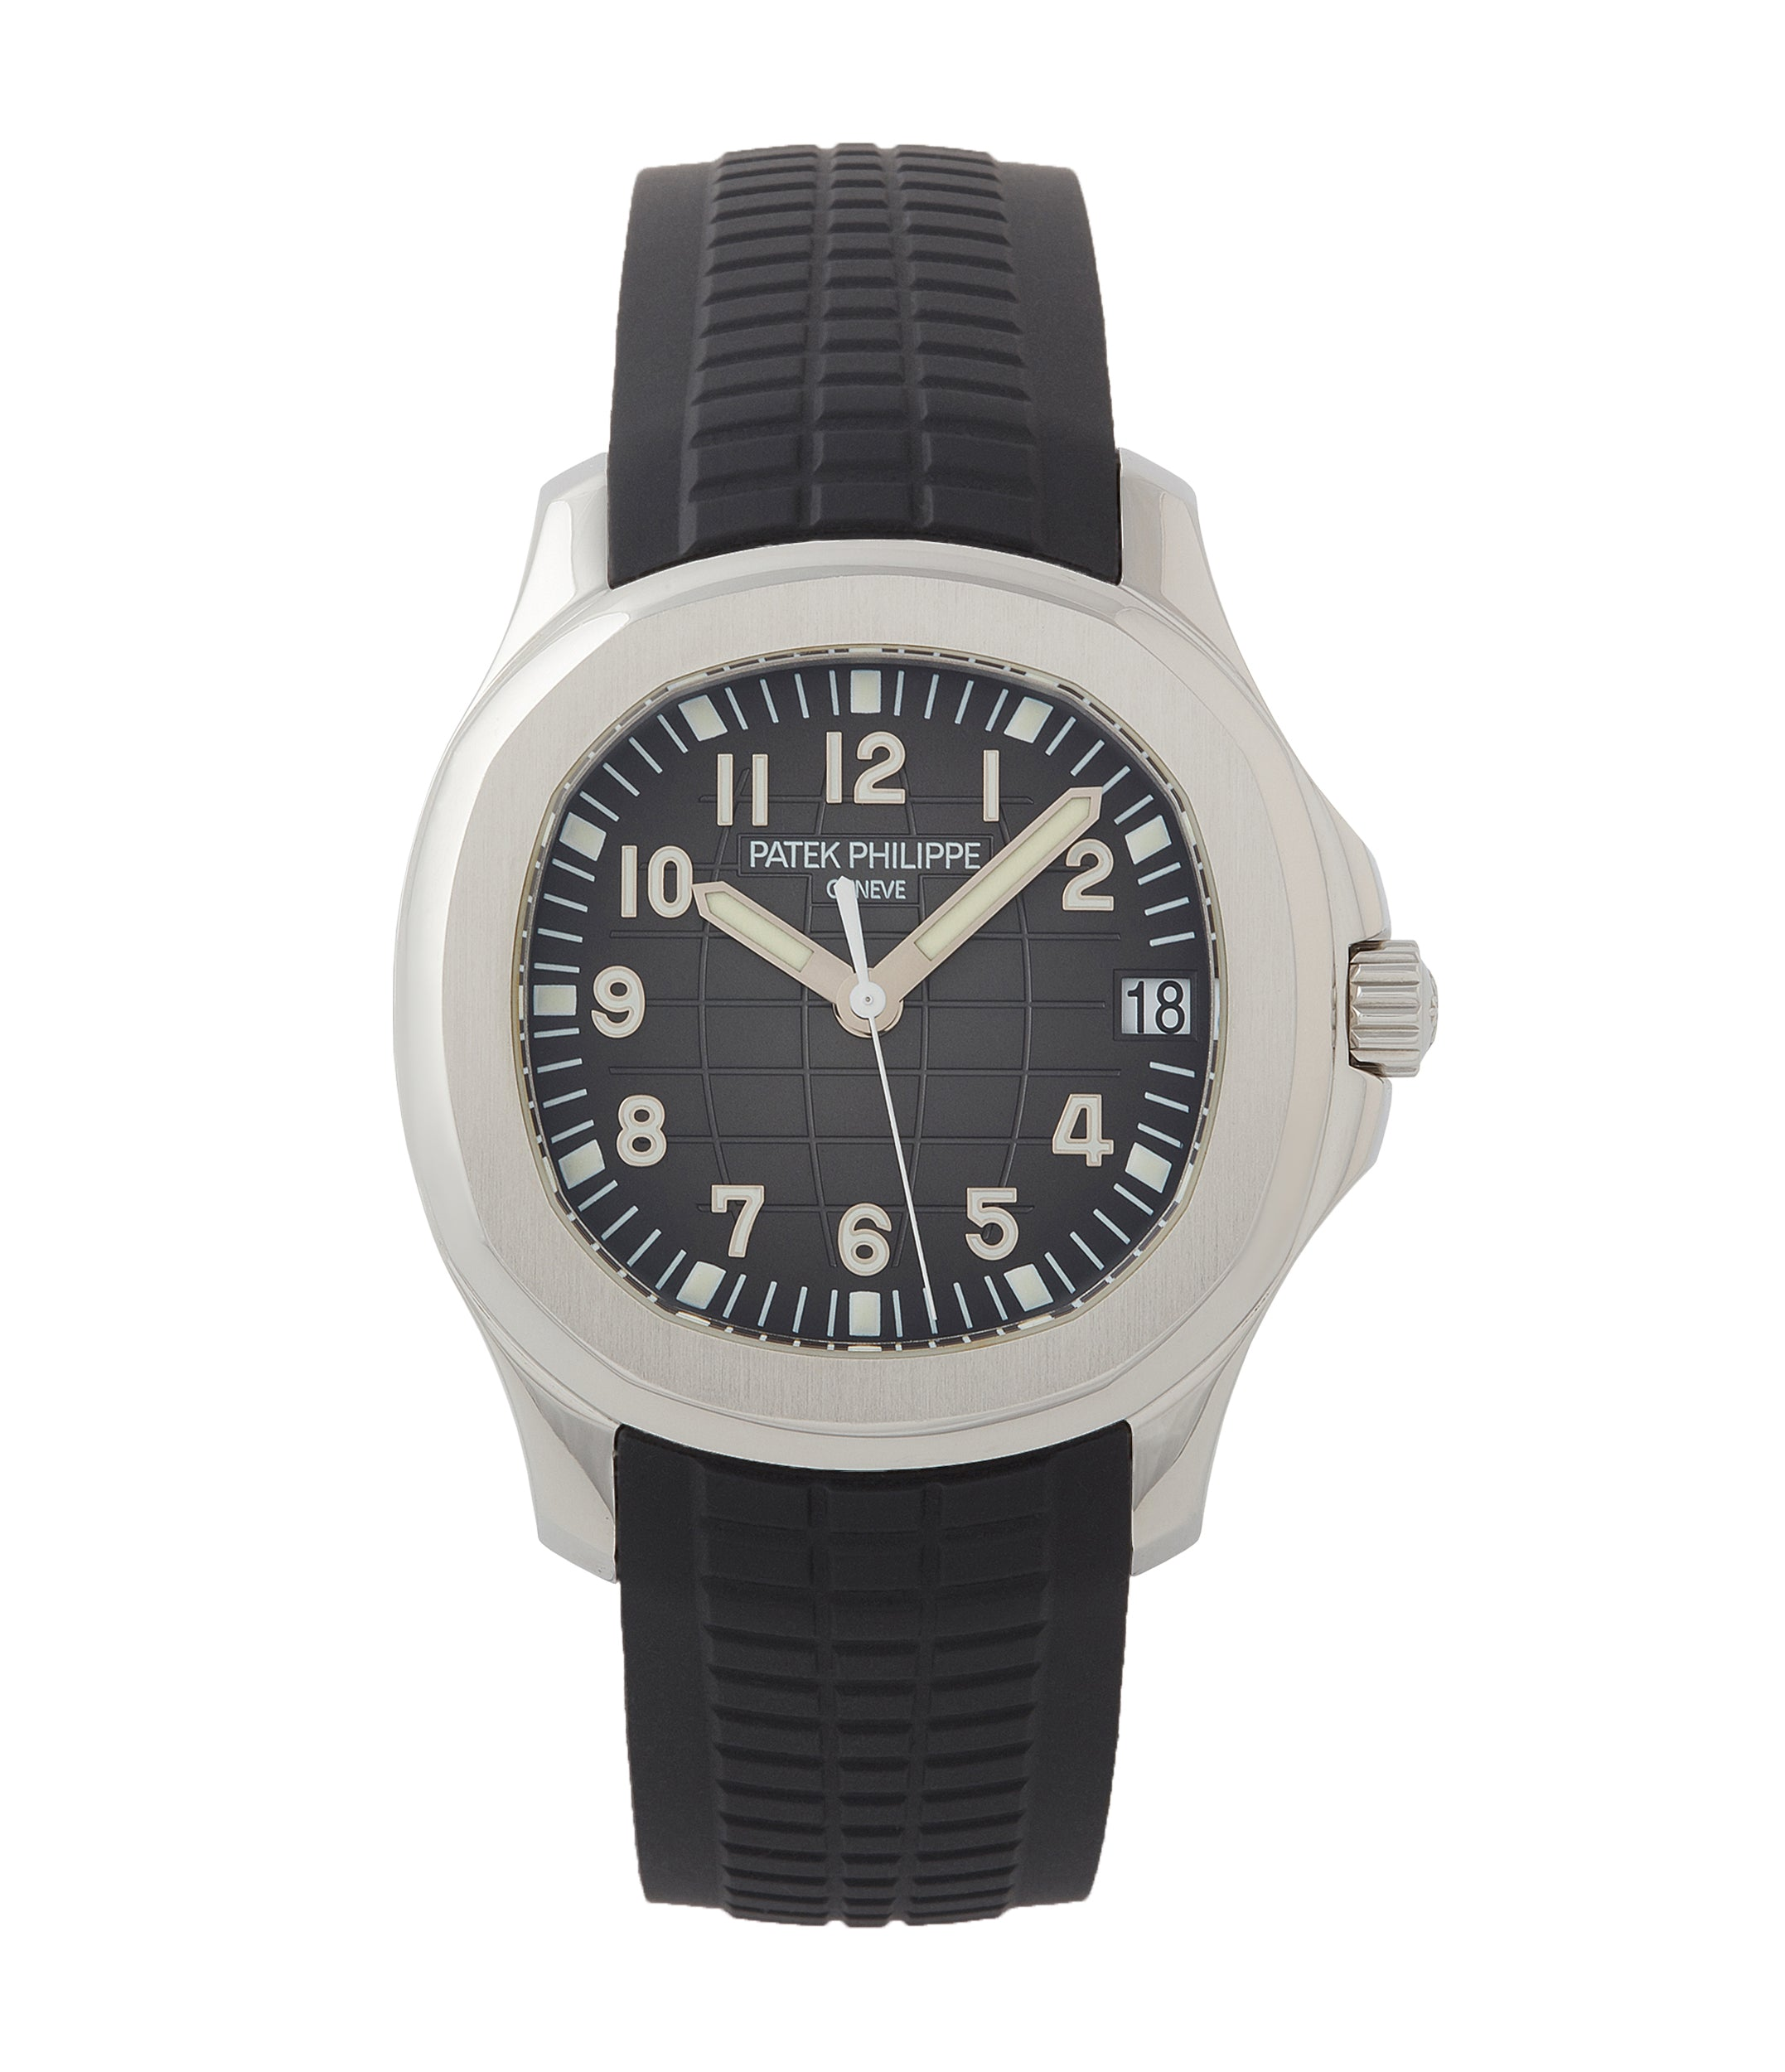 buy Patek Philippe Aquanaut 5165A-001 transitional steel sport watch for sale online at A Collected Man London UK specialist of rare watches